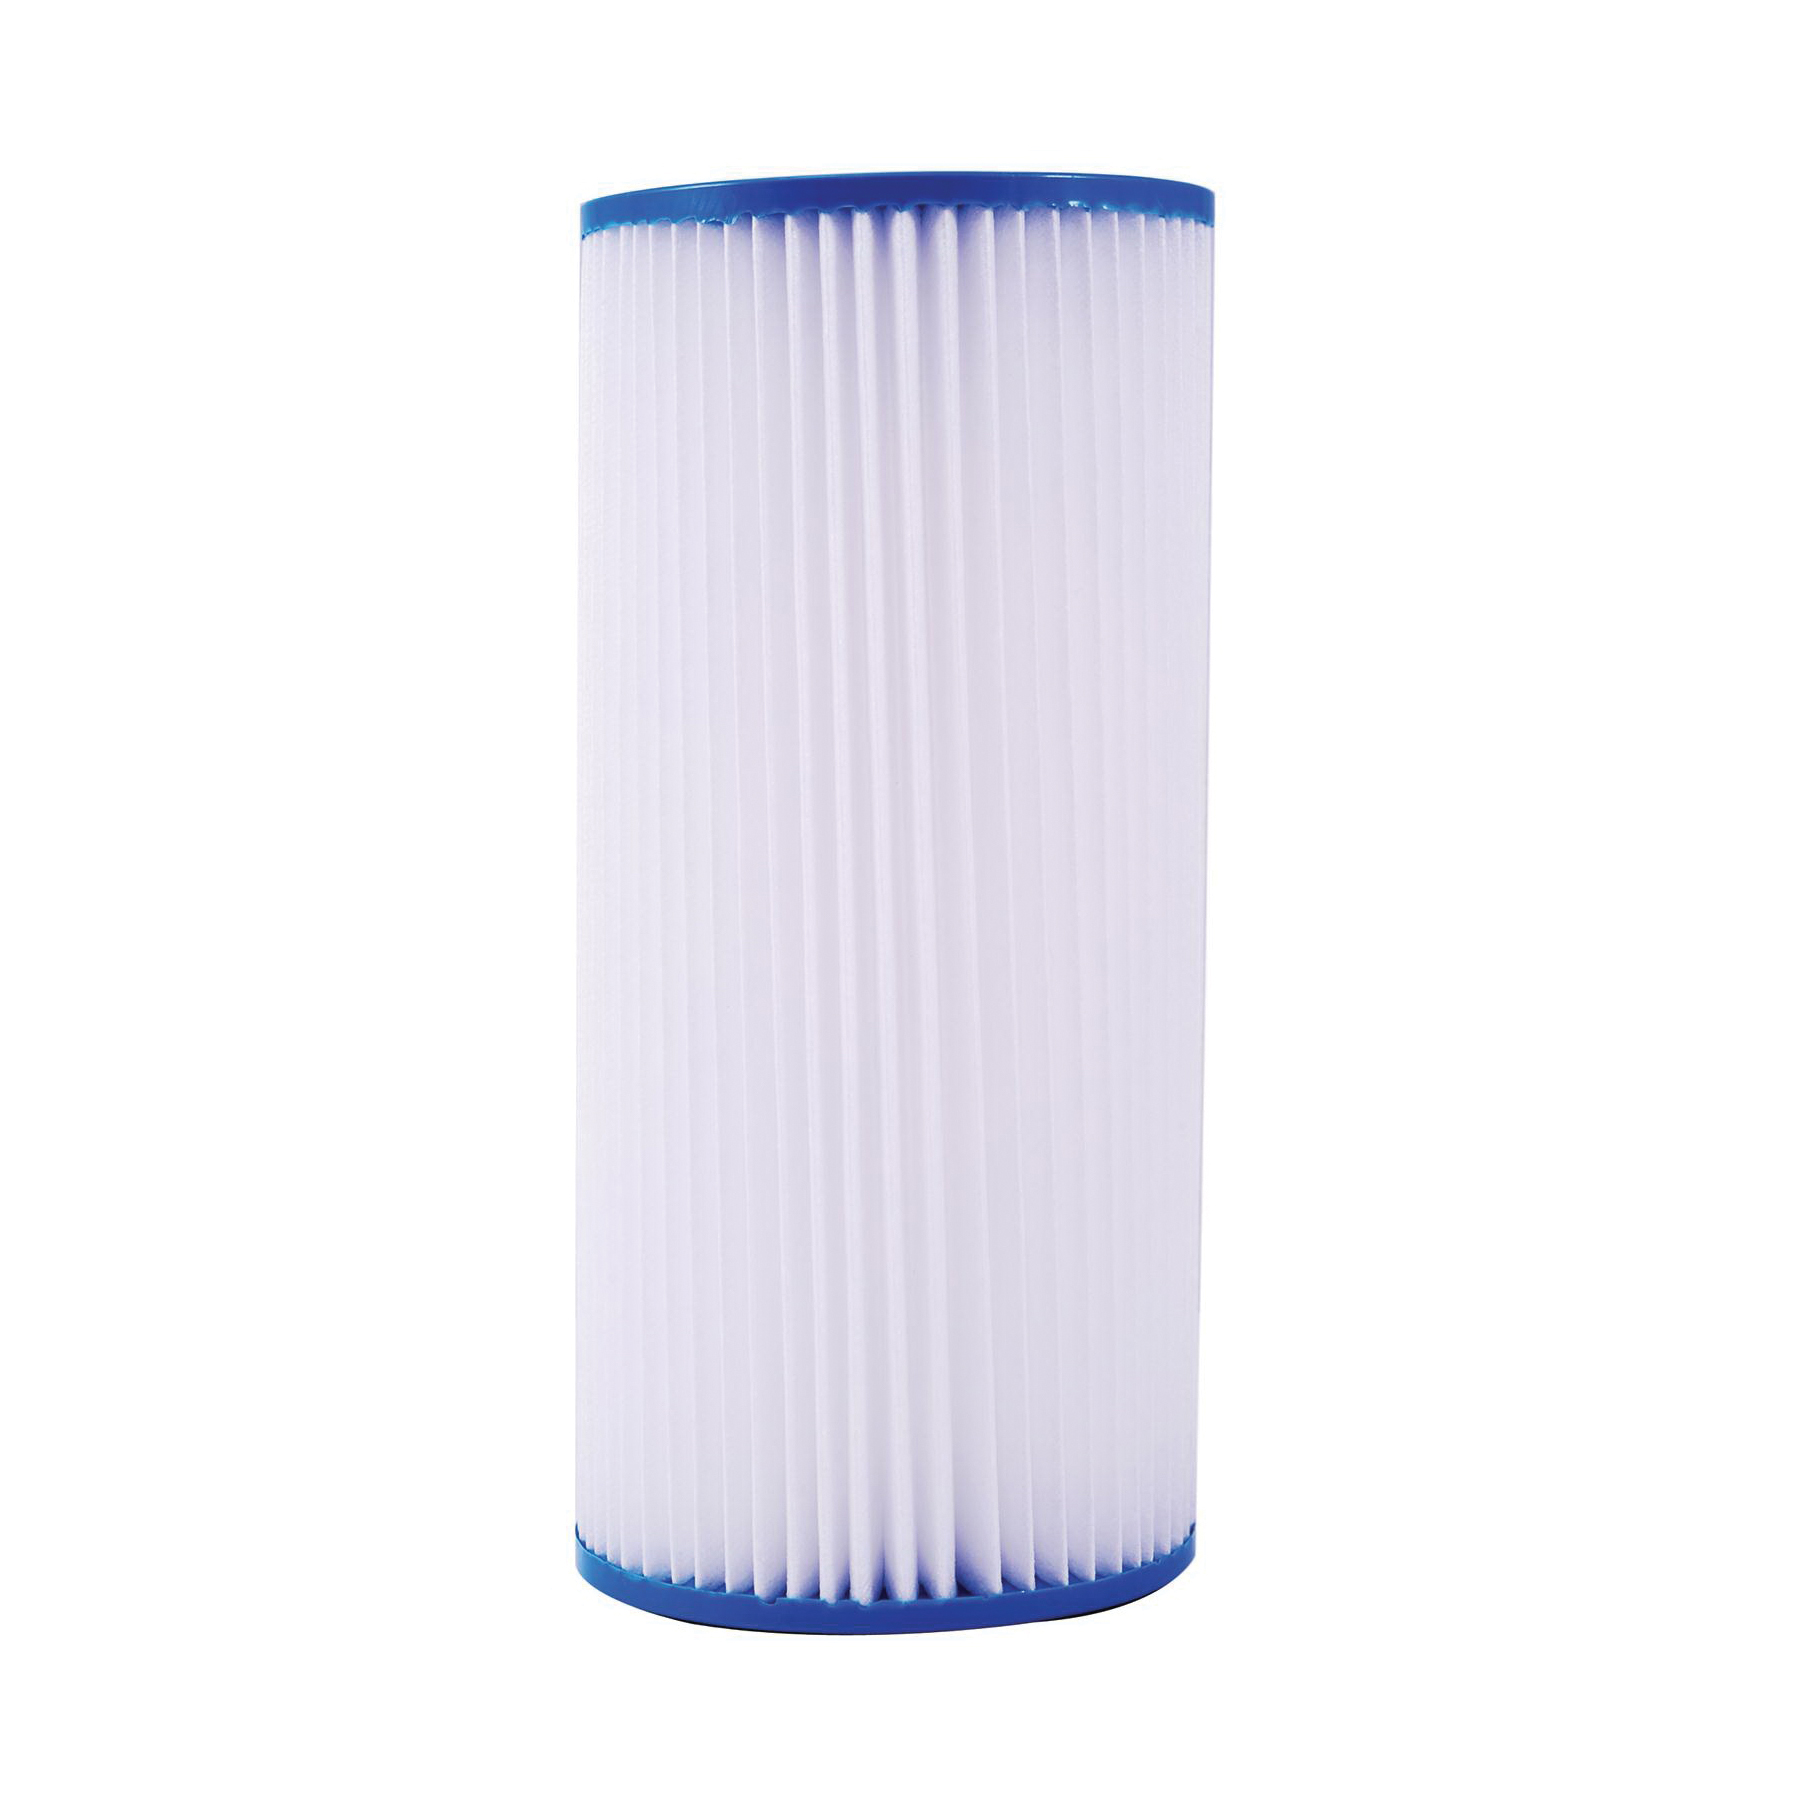 WATTS® 7100409 PWPL10FF Full Flow Pleated Filter Cartridge, 9-3/4 in L, Polypropylene